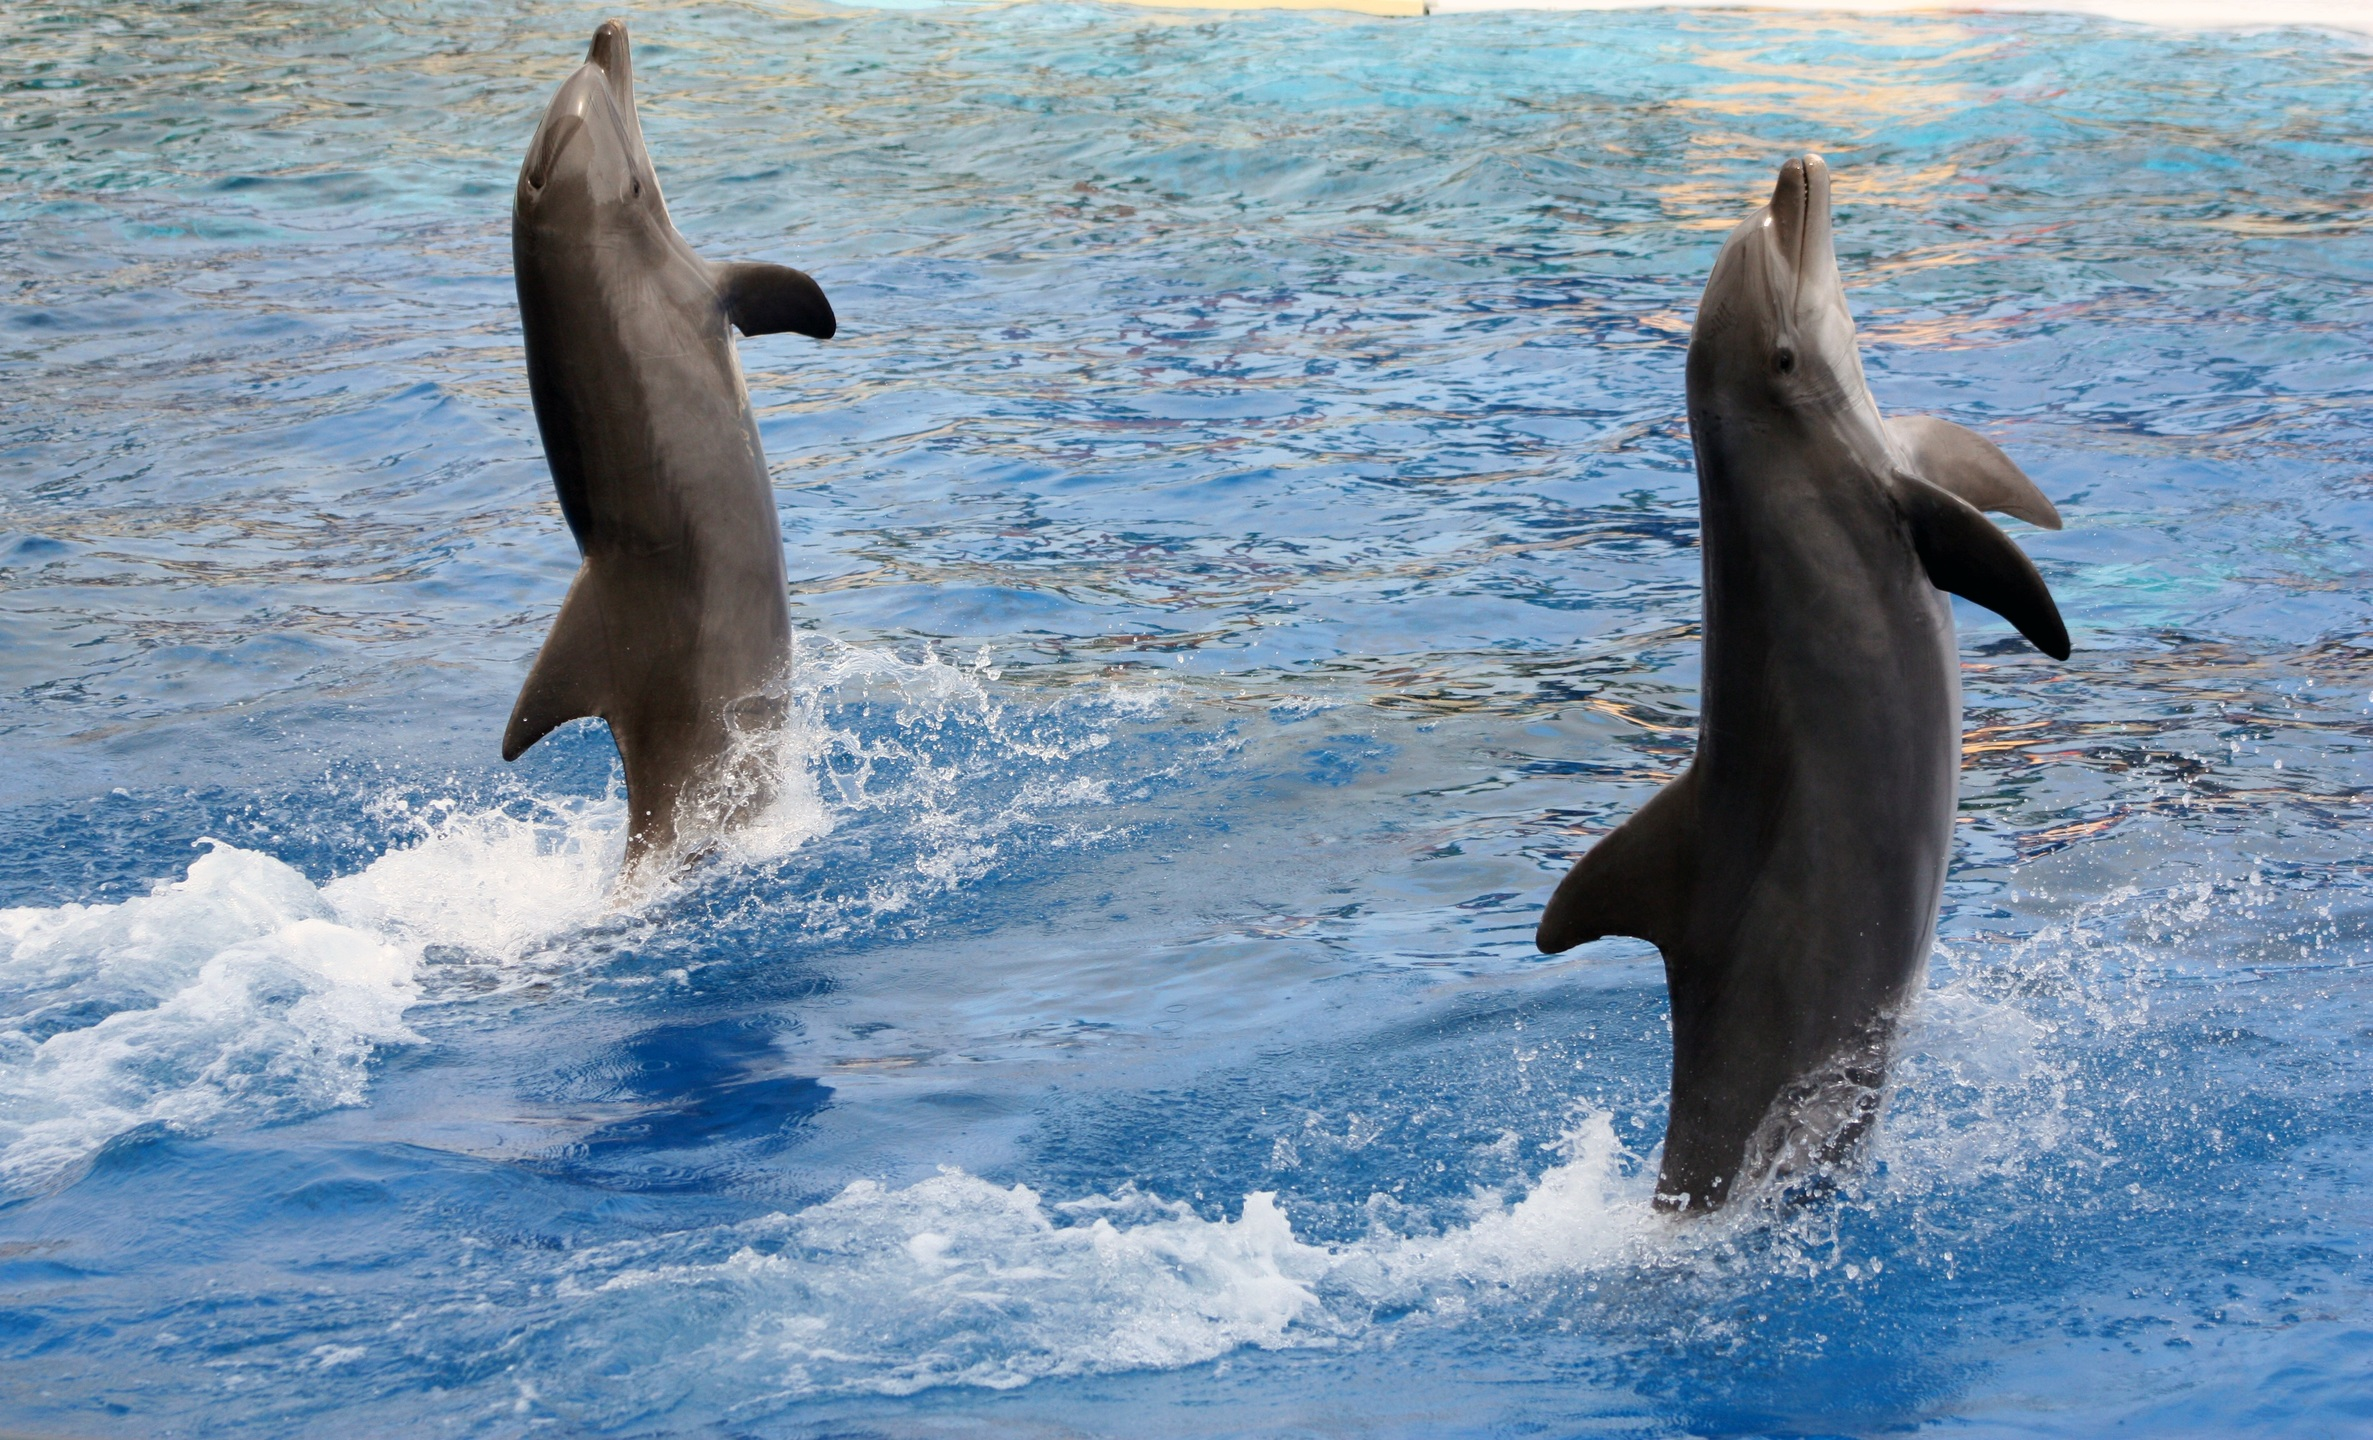 Amazing Dolphin Facts That Will Make You Fall in Love With Them